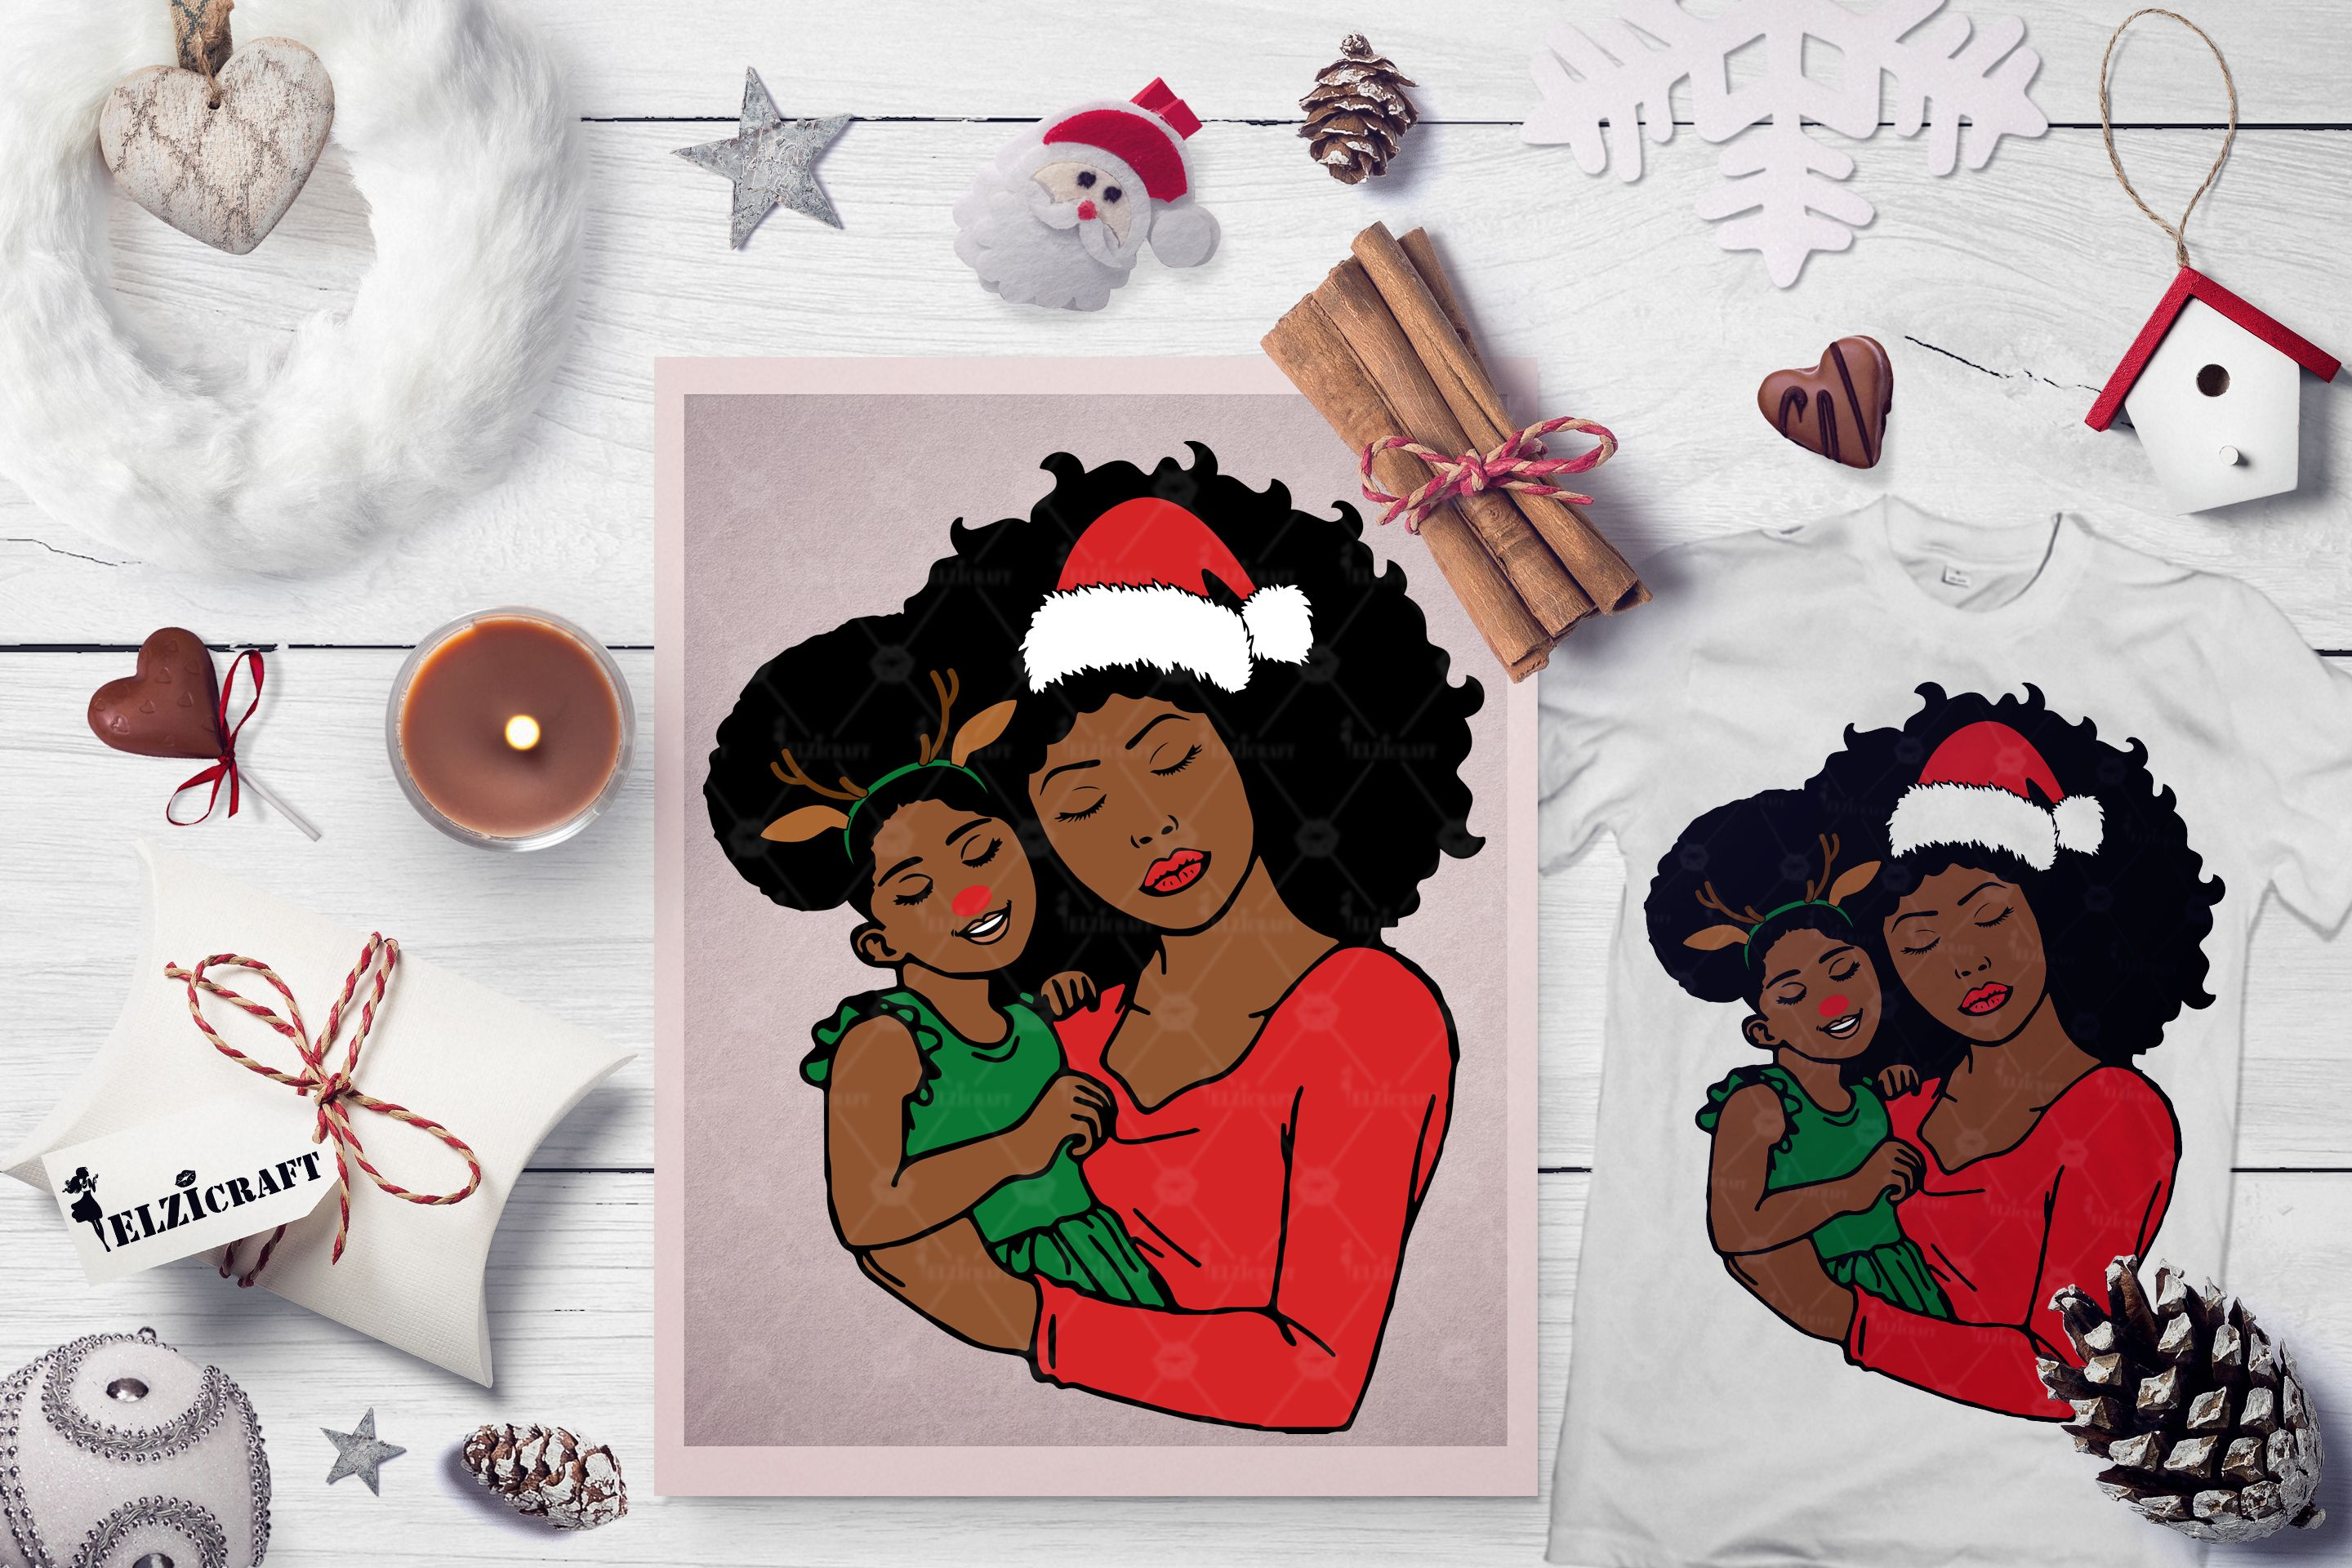 Afro, Mommy and Me, Santa Claus, Rudolph (Graphic) by